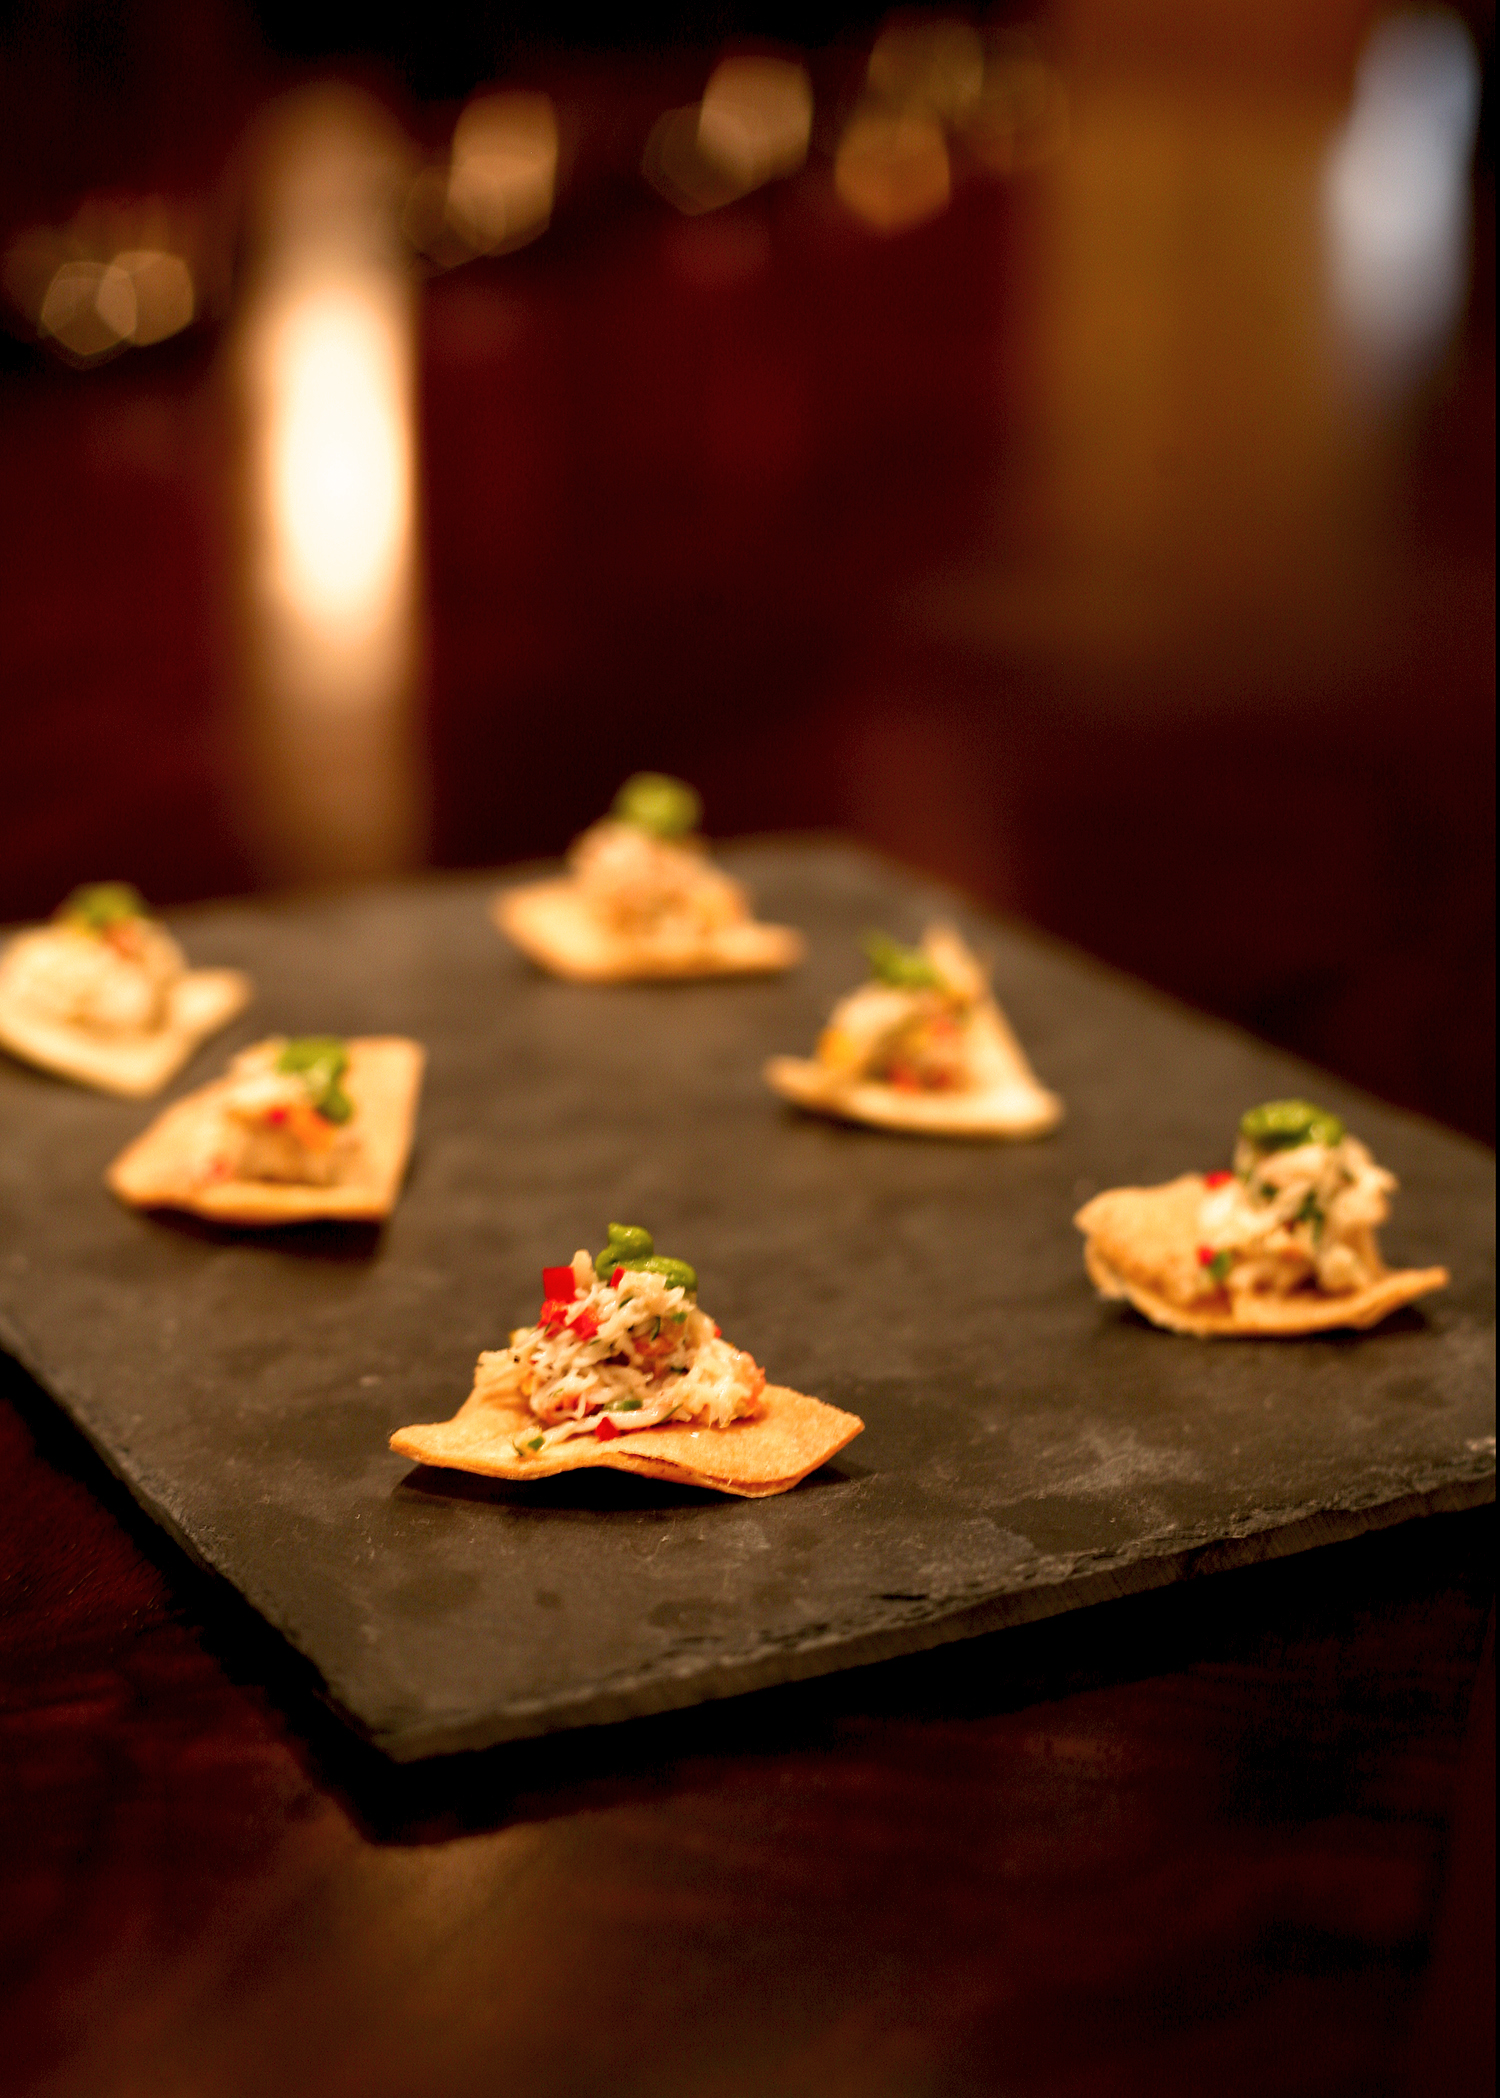 Dungeness crab, avocado mousse, house made tortilla